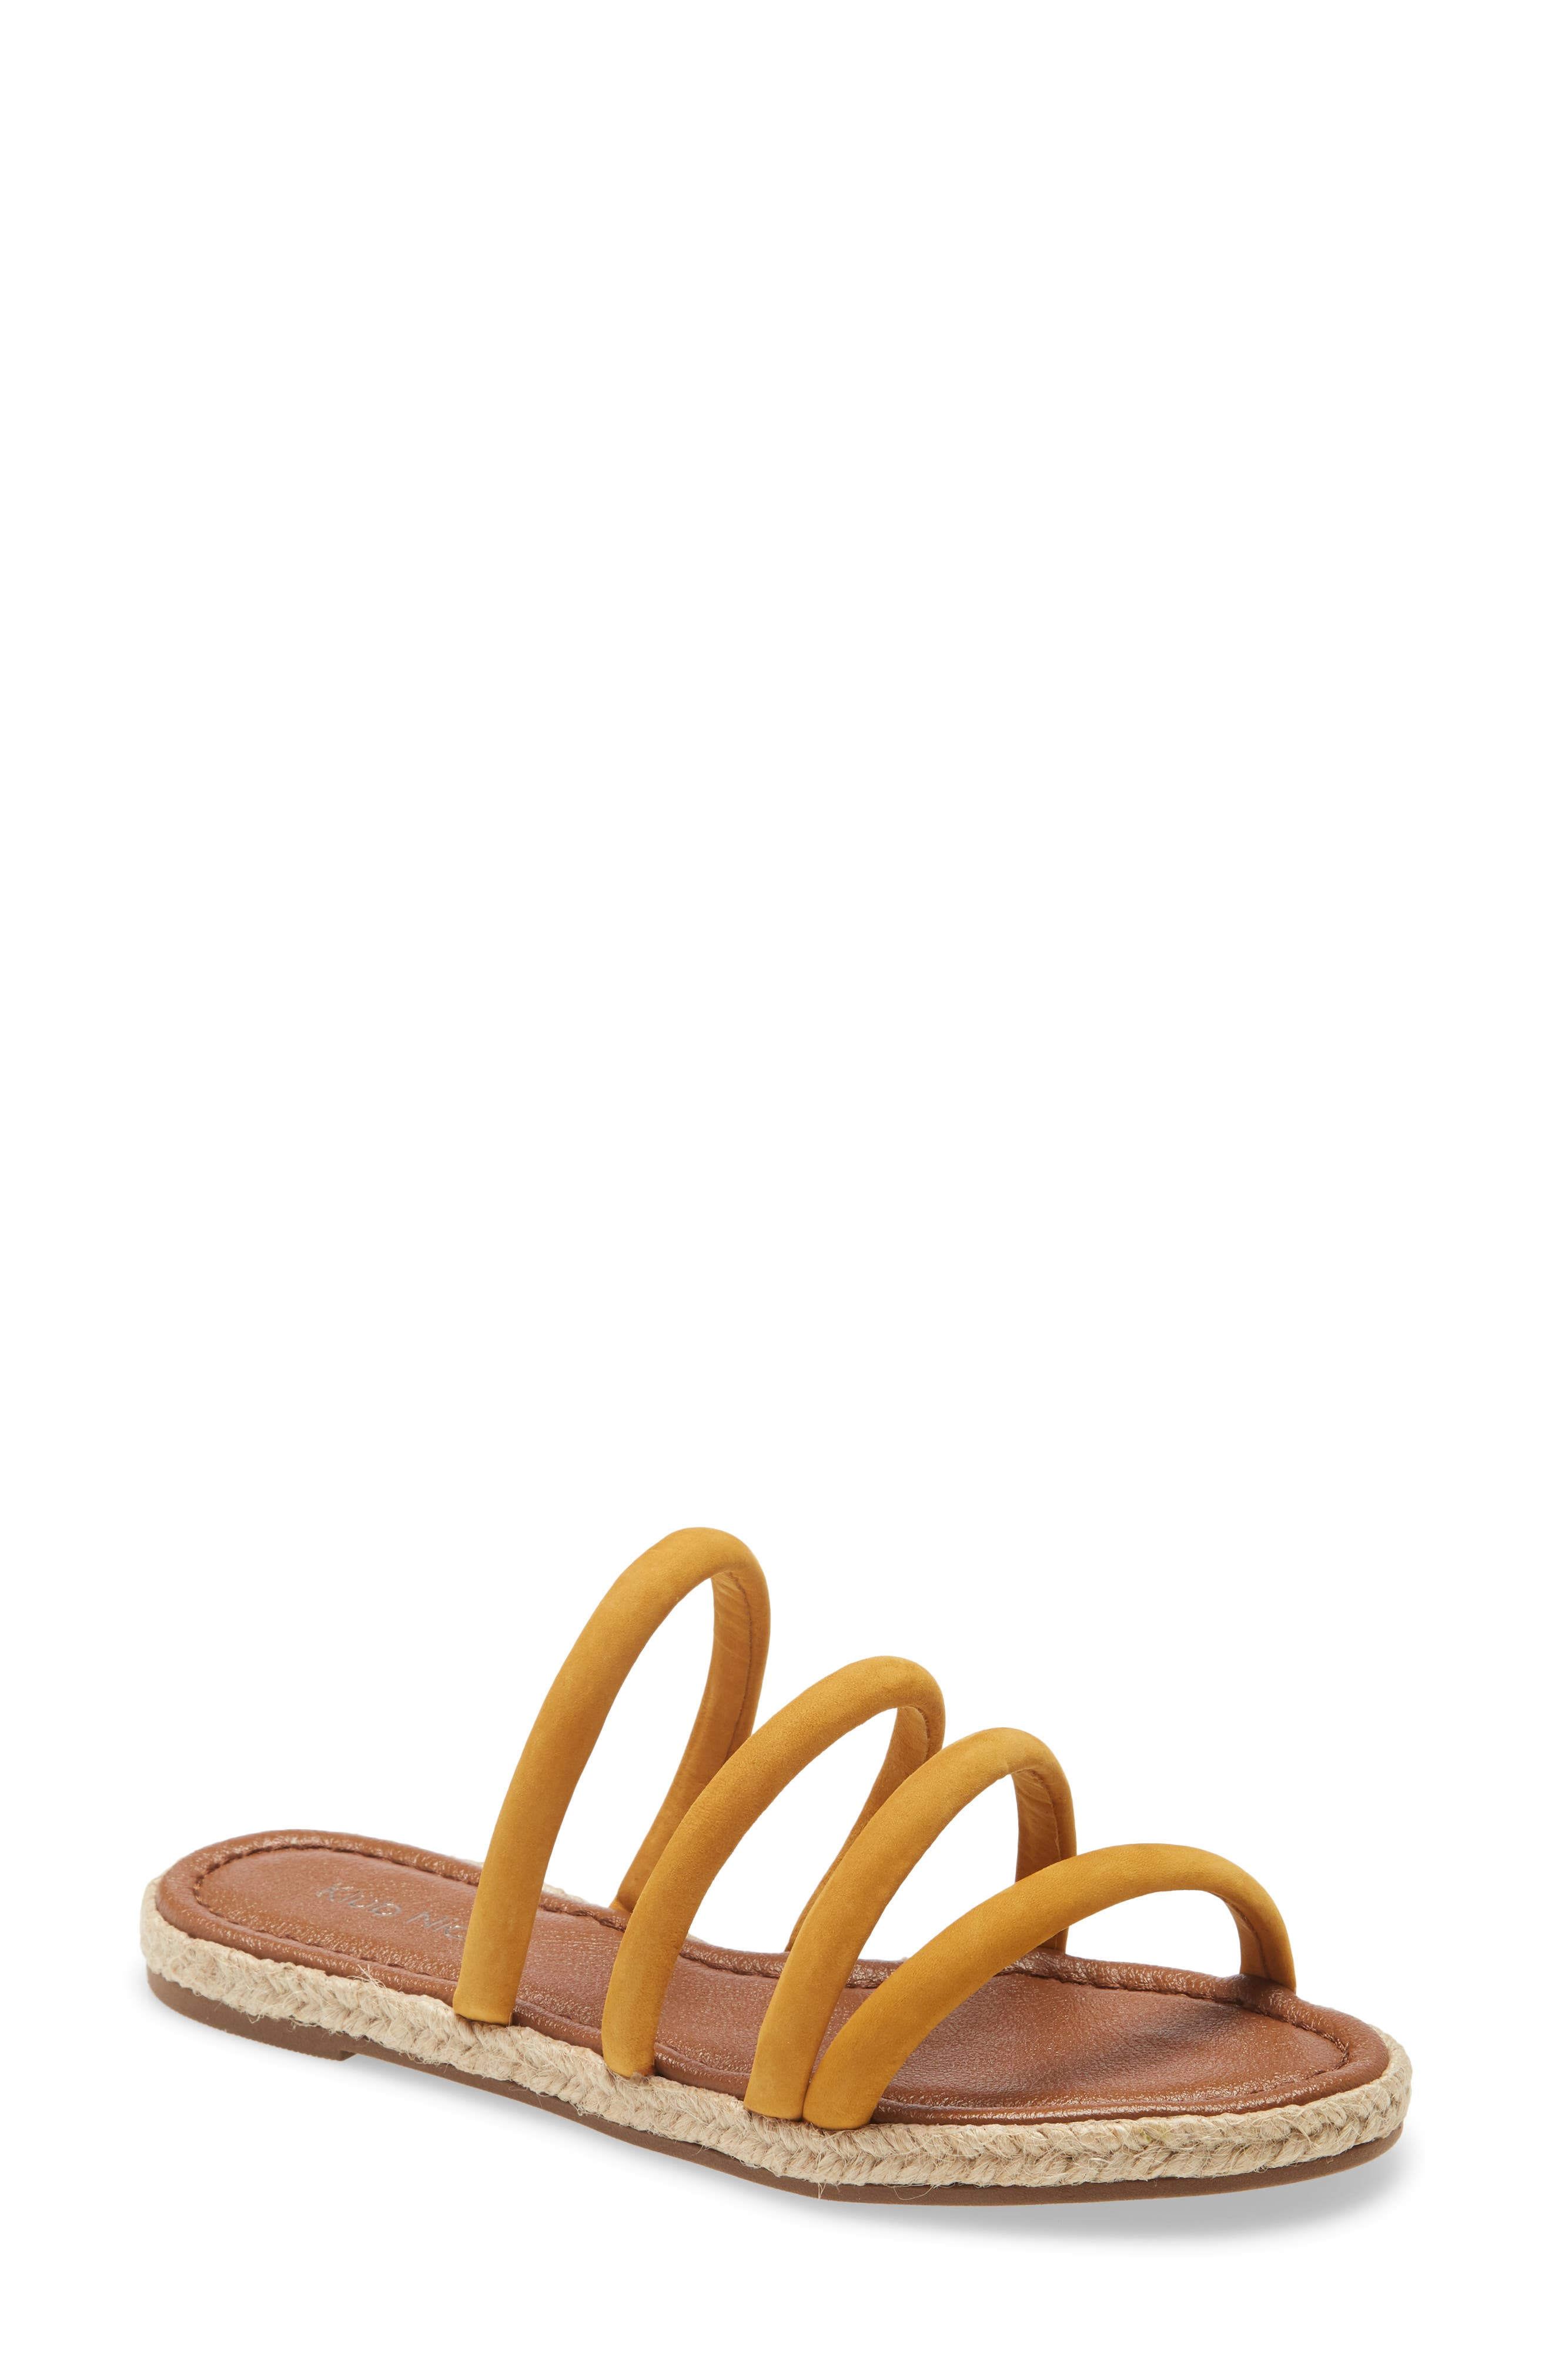 Comfy rolled straps top a padded slide sandal that is traced by jute along the midsole for an extra breath of beachy style. Style Name: Klub Nico Elena Slide Sandal (Women). Style Number: 6056208. Available in stores.